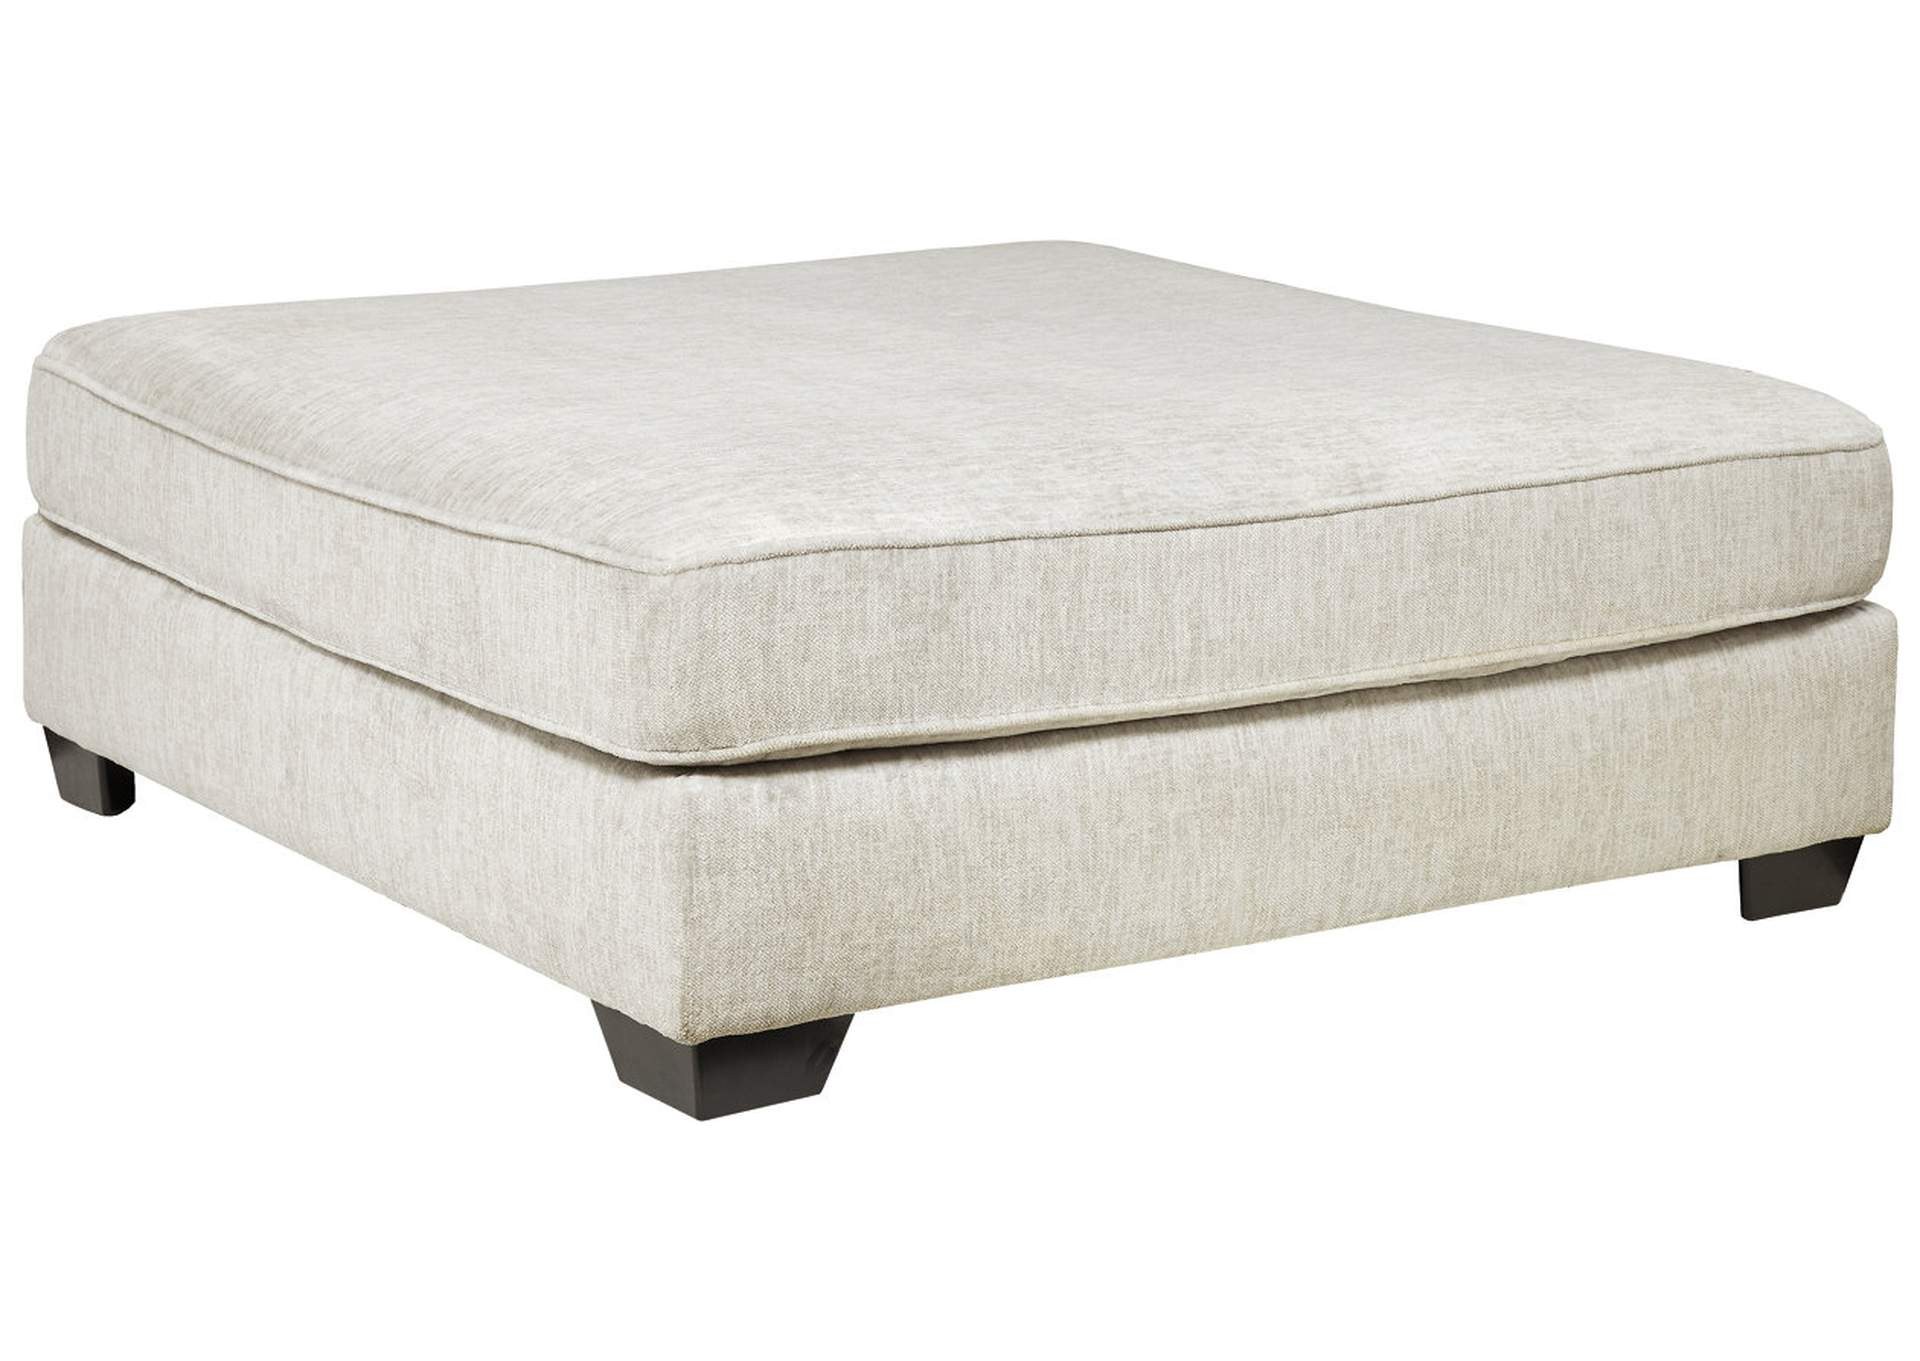 Rawcliffe Oversized Accent Ottoman,Signature Design By Ashley